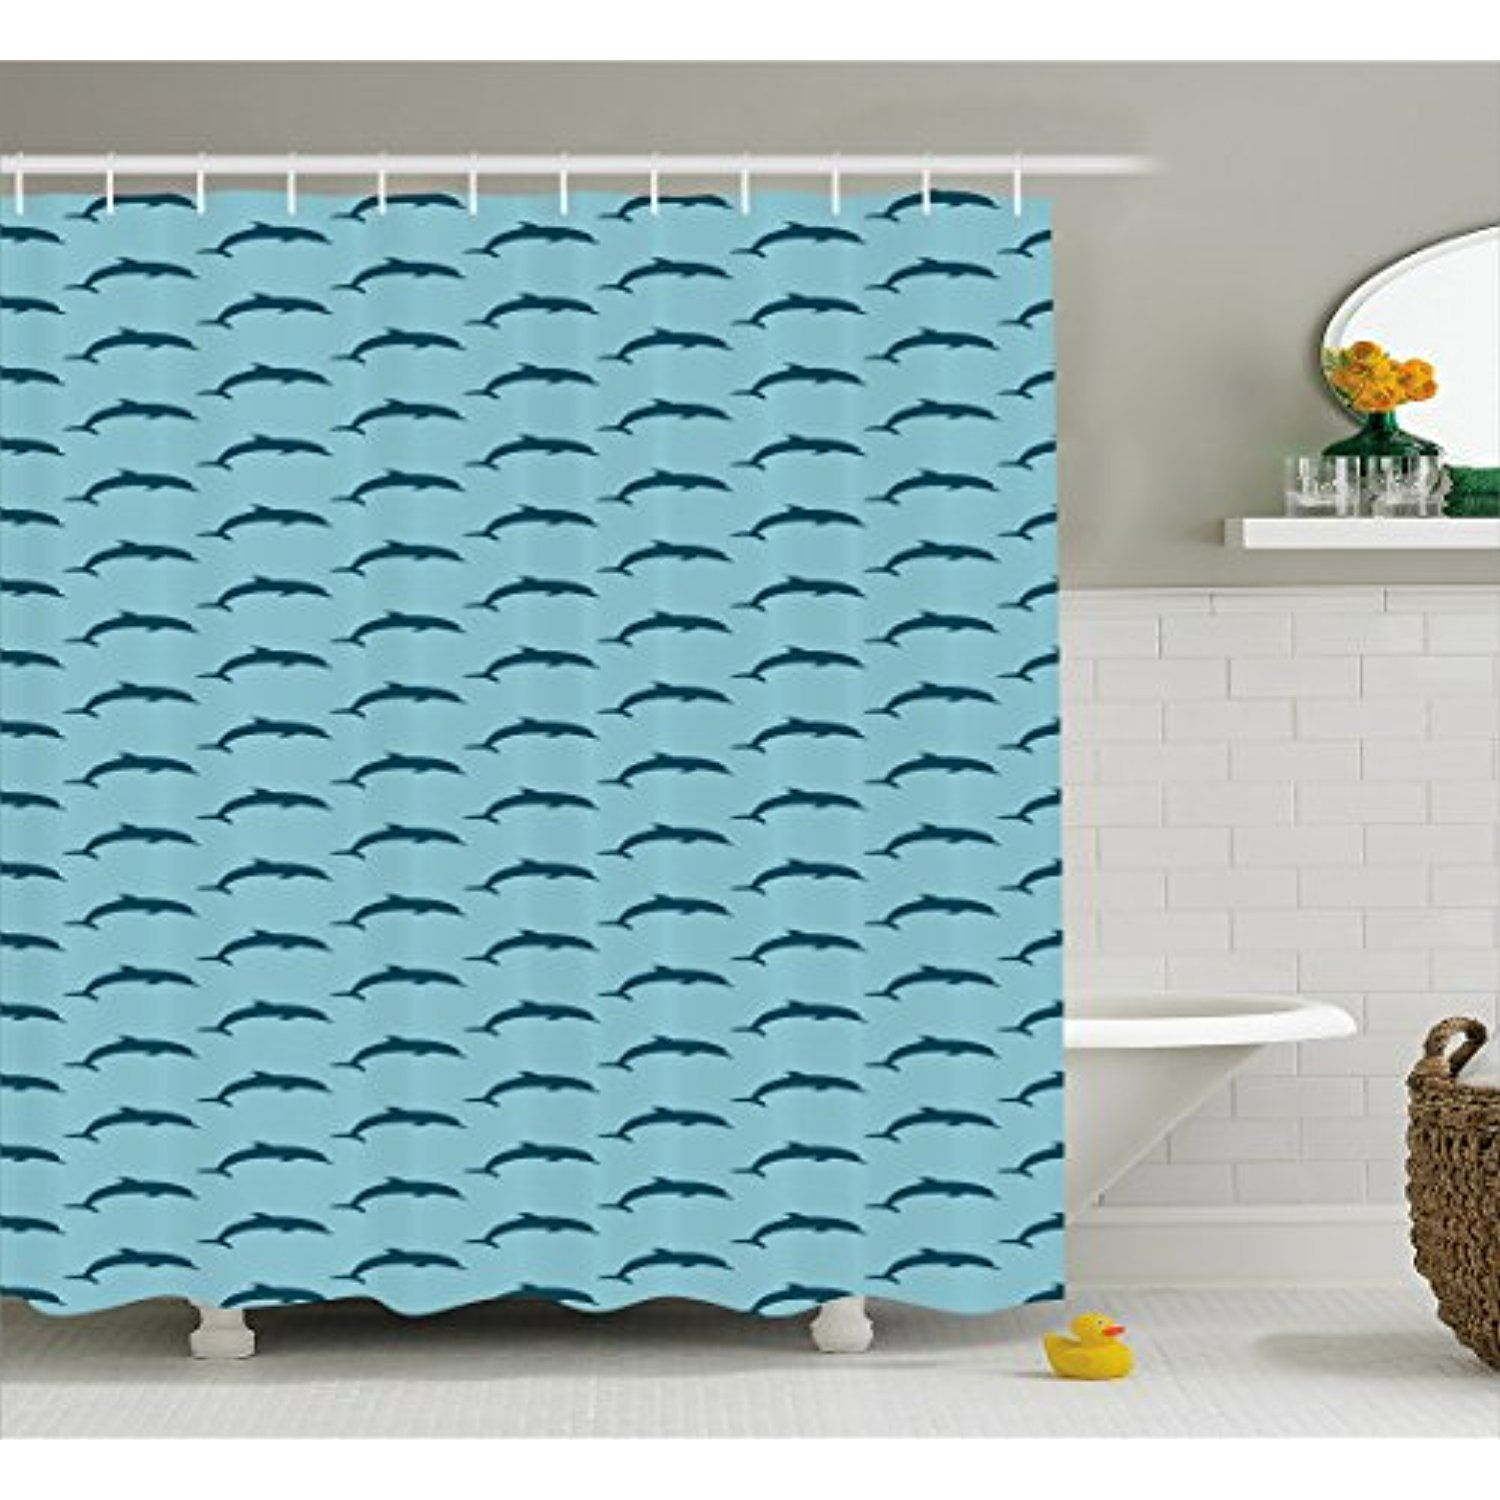 Dolphin Shower Curtain By Ambesonne Ocean Fauna Collection Silhouette With Blue Color Scheme Abstract Fabric Bathroom Decor Set Hooks